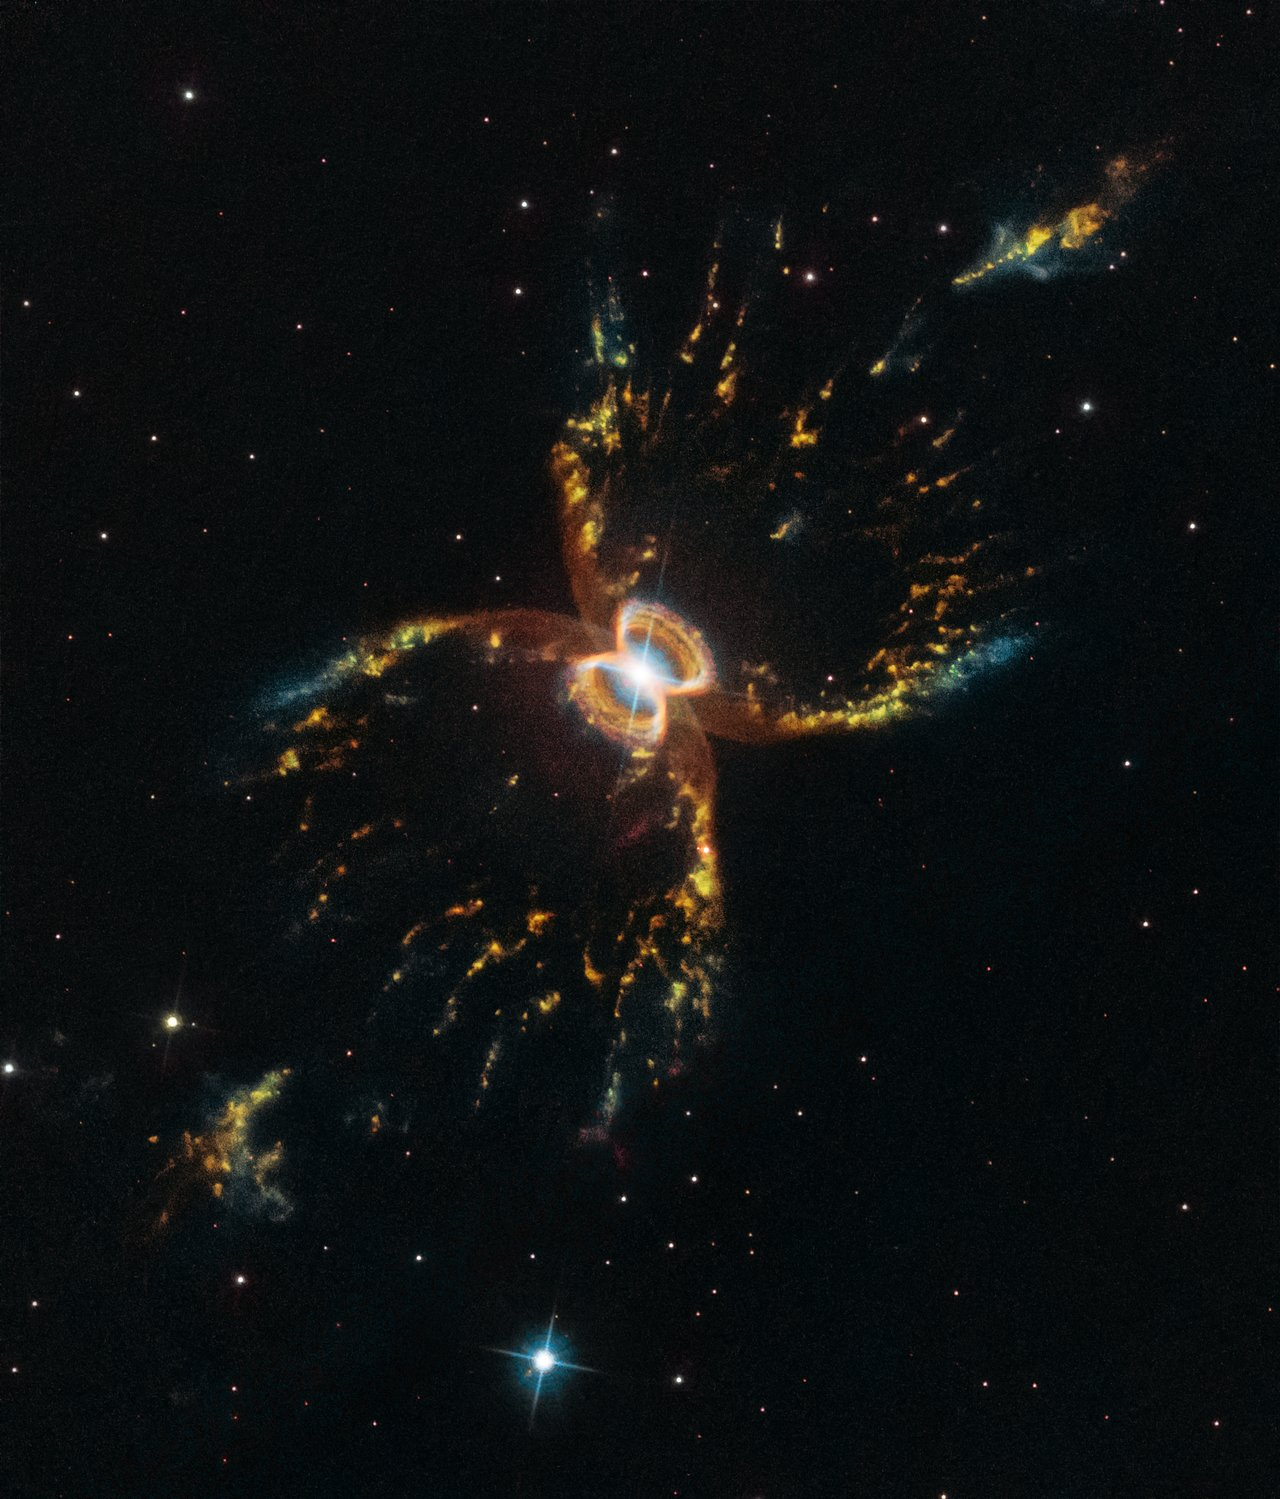 Photo Release: Hubble Celebrates its 29th Birthday with Unrivaled View of the Southern Crab Nebula